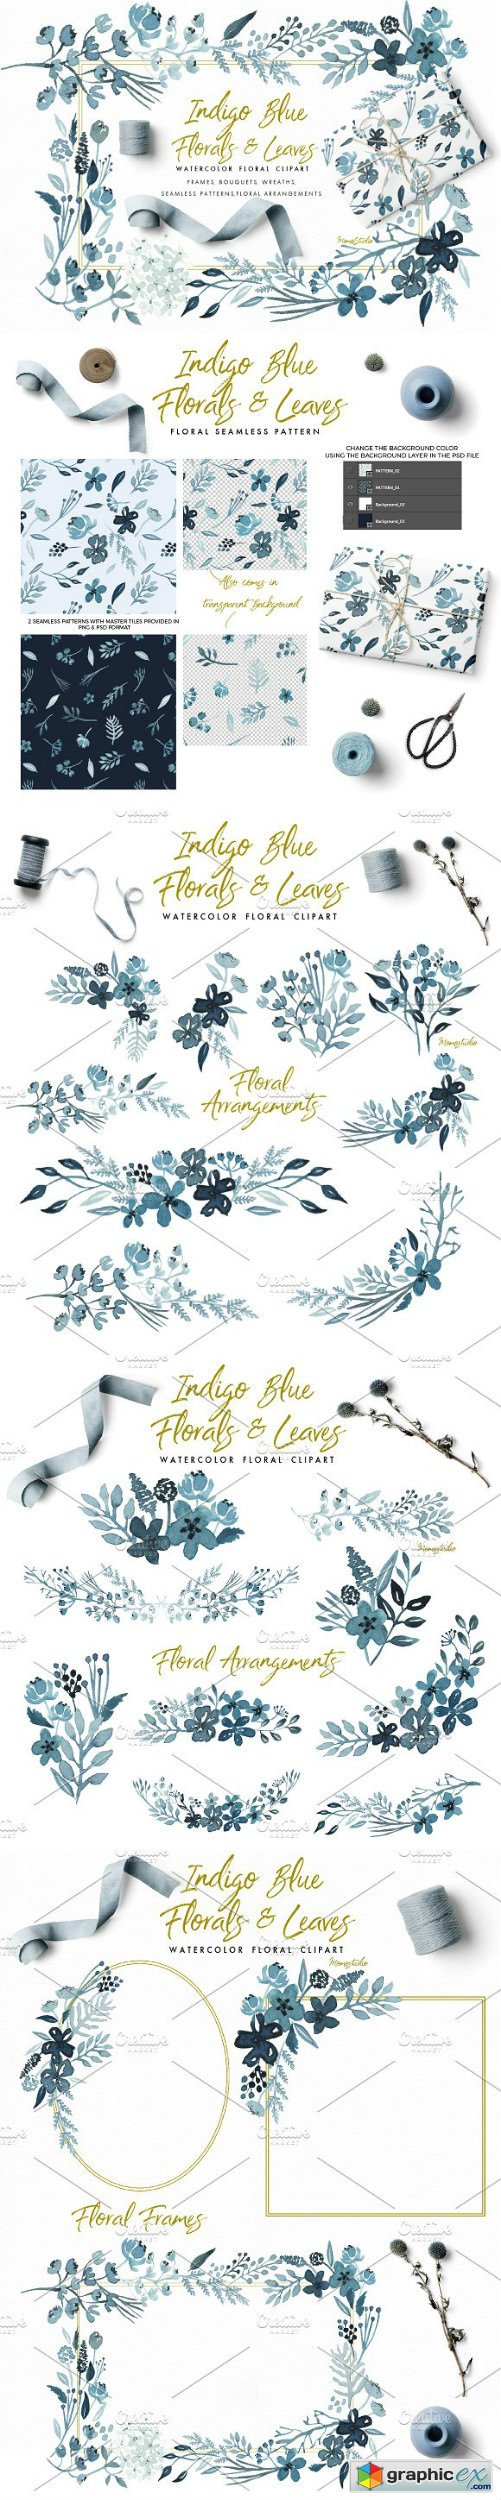 Indigo Blue Florals and Leaves